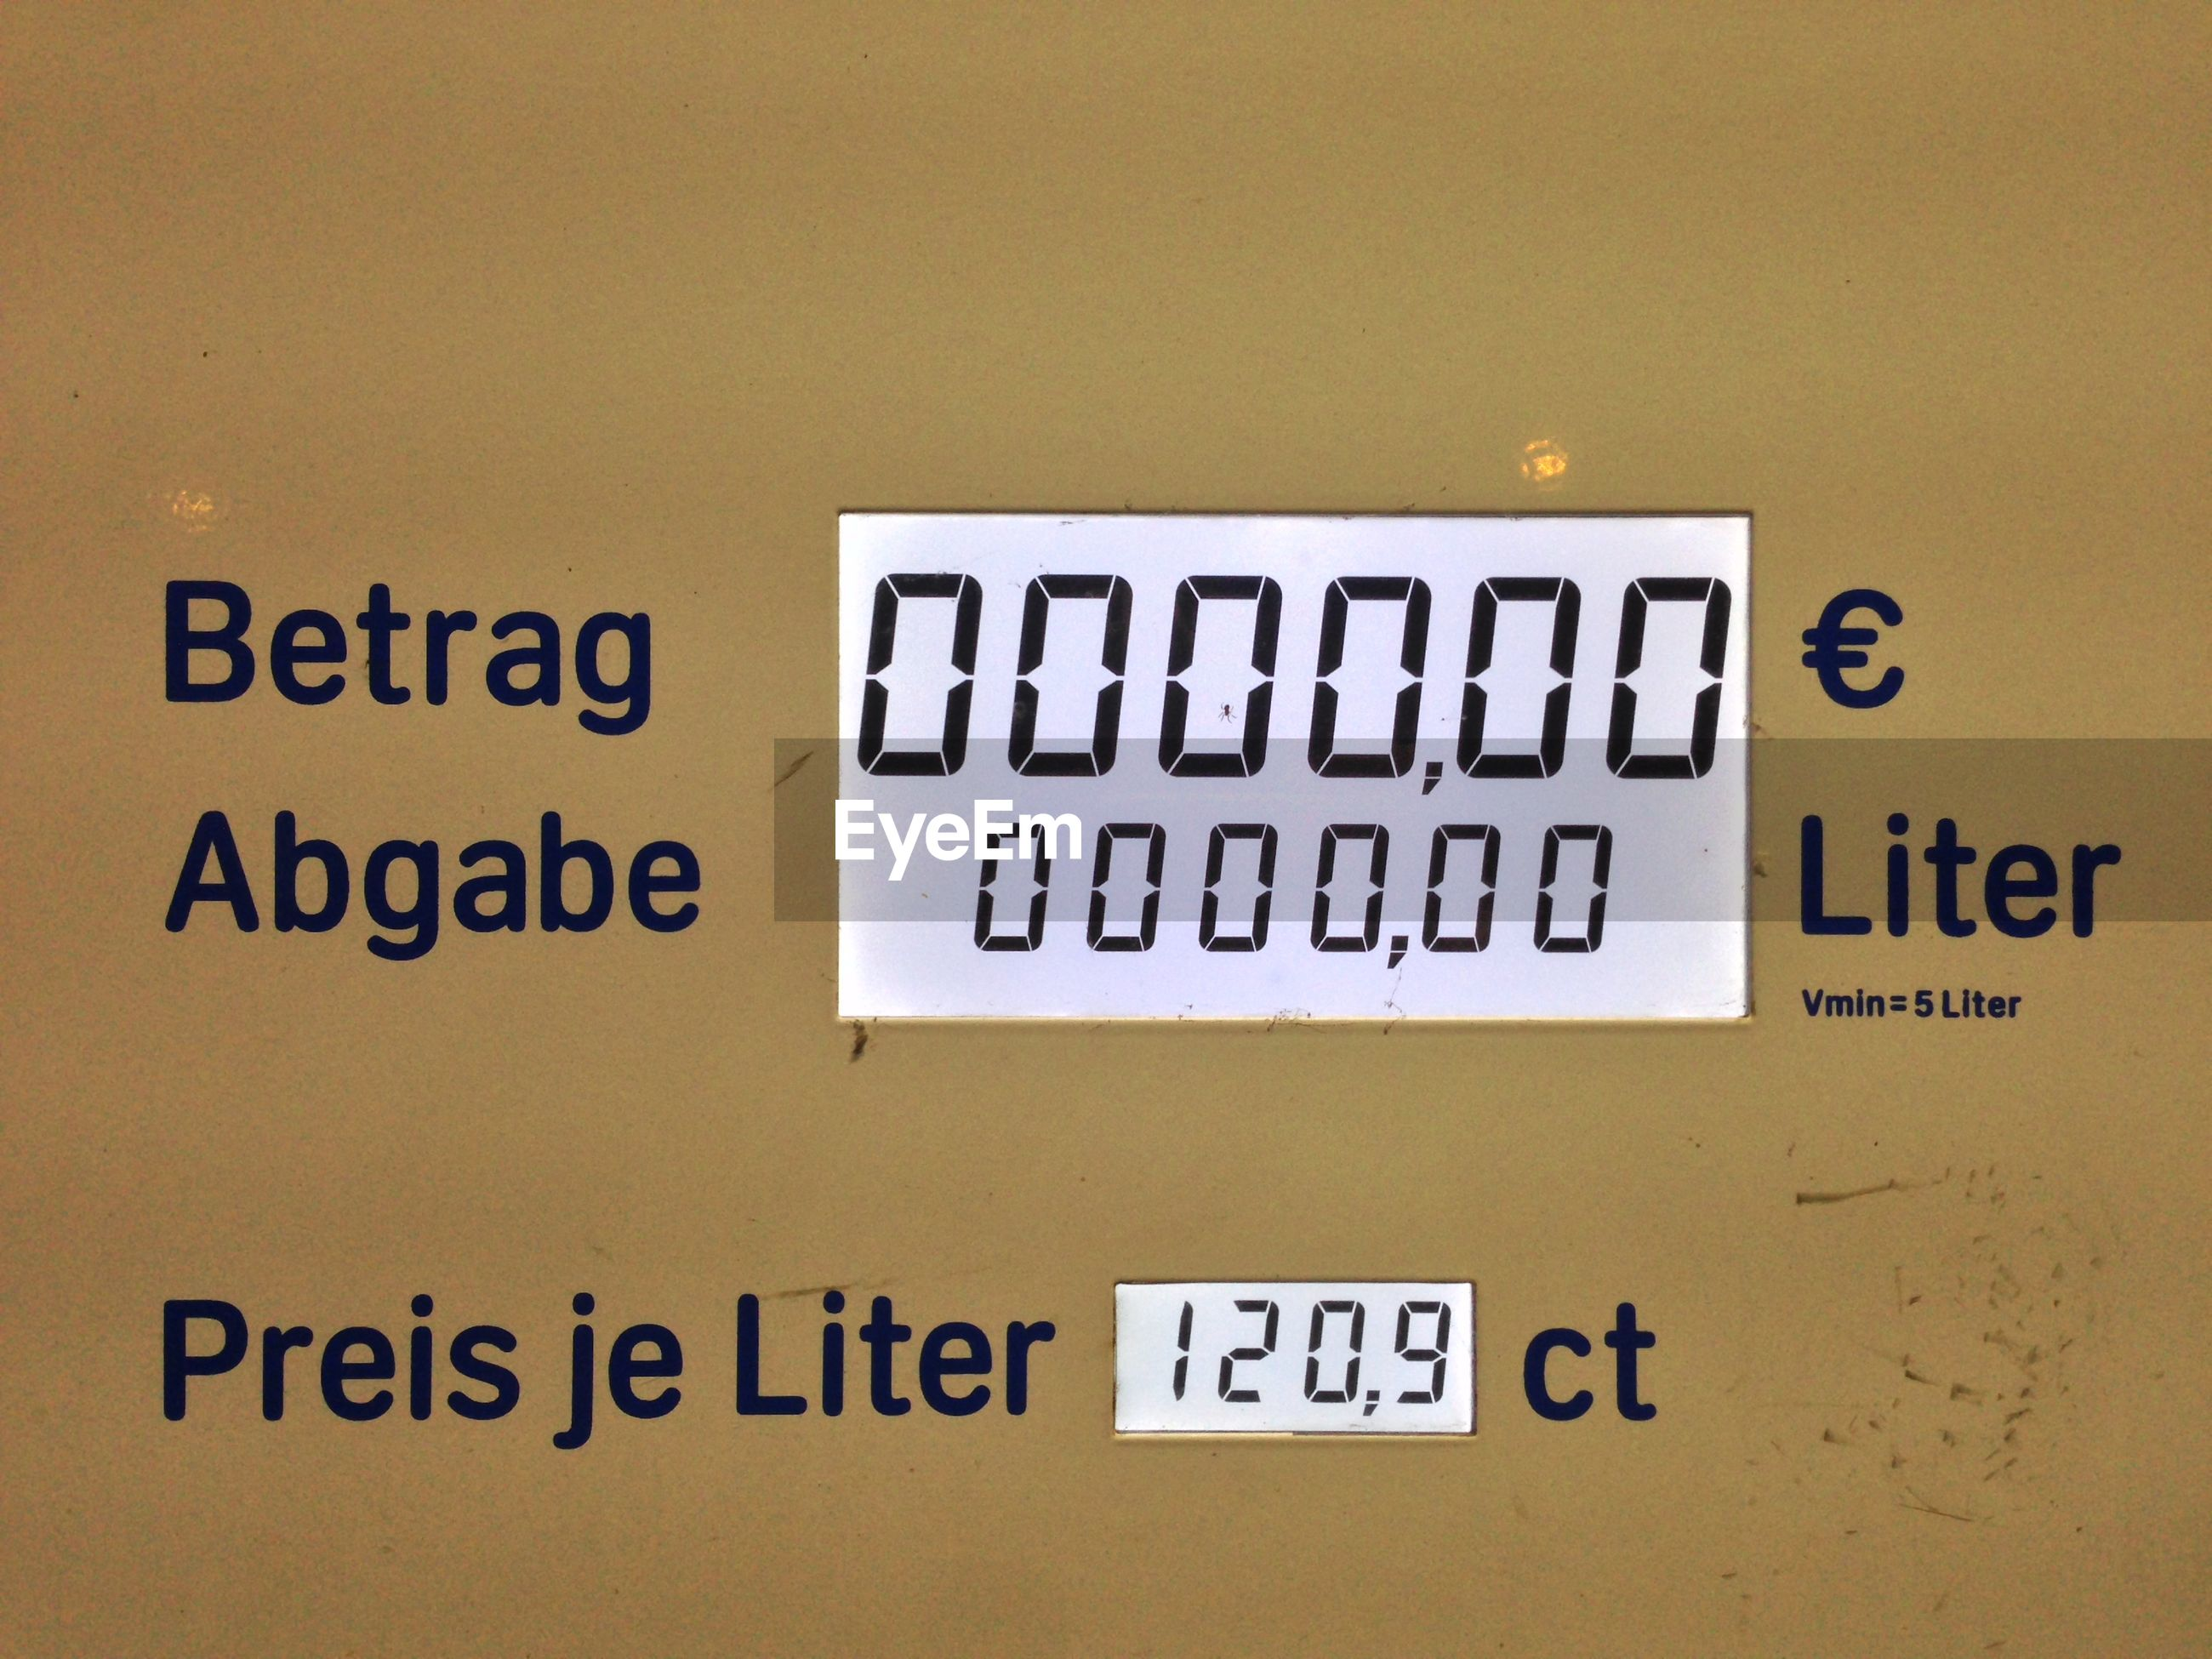 Close-up of fuel pump meter at gas station